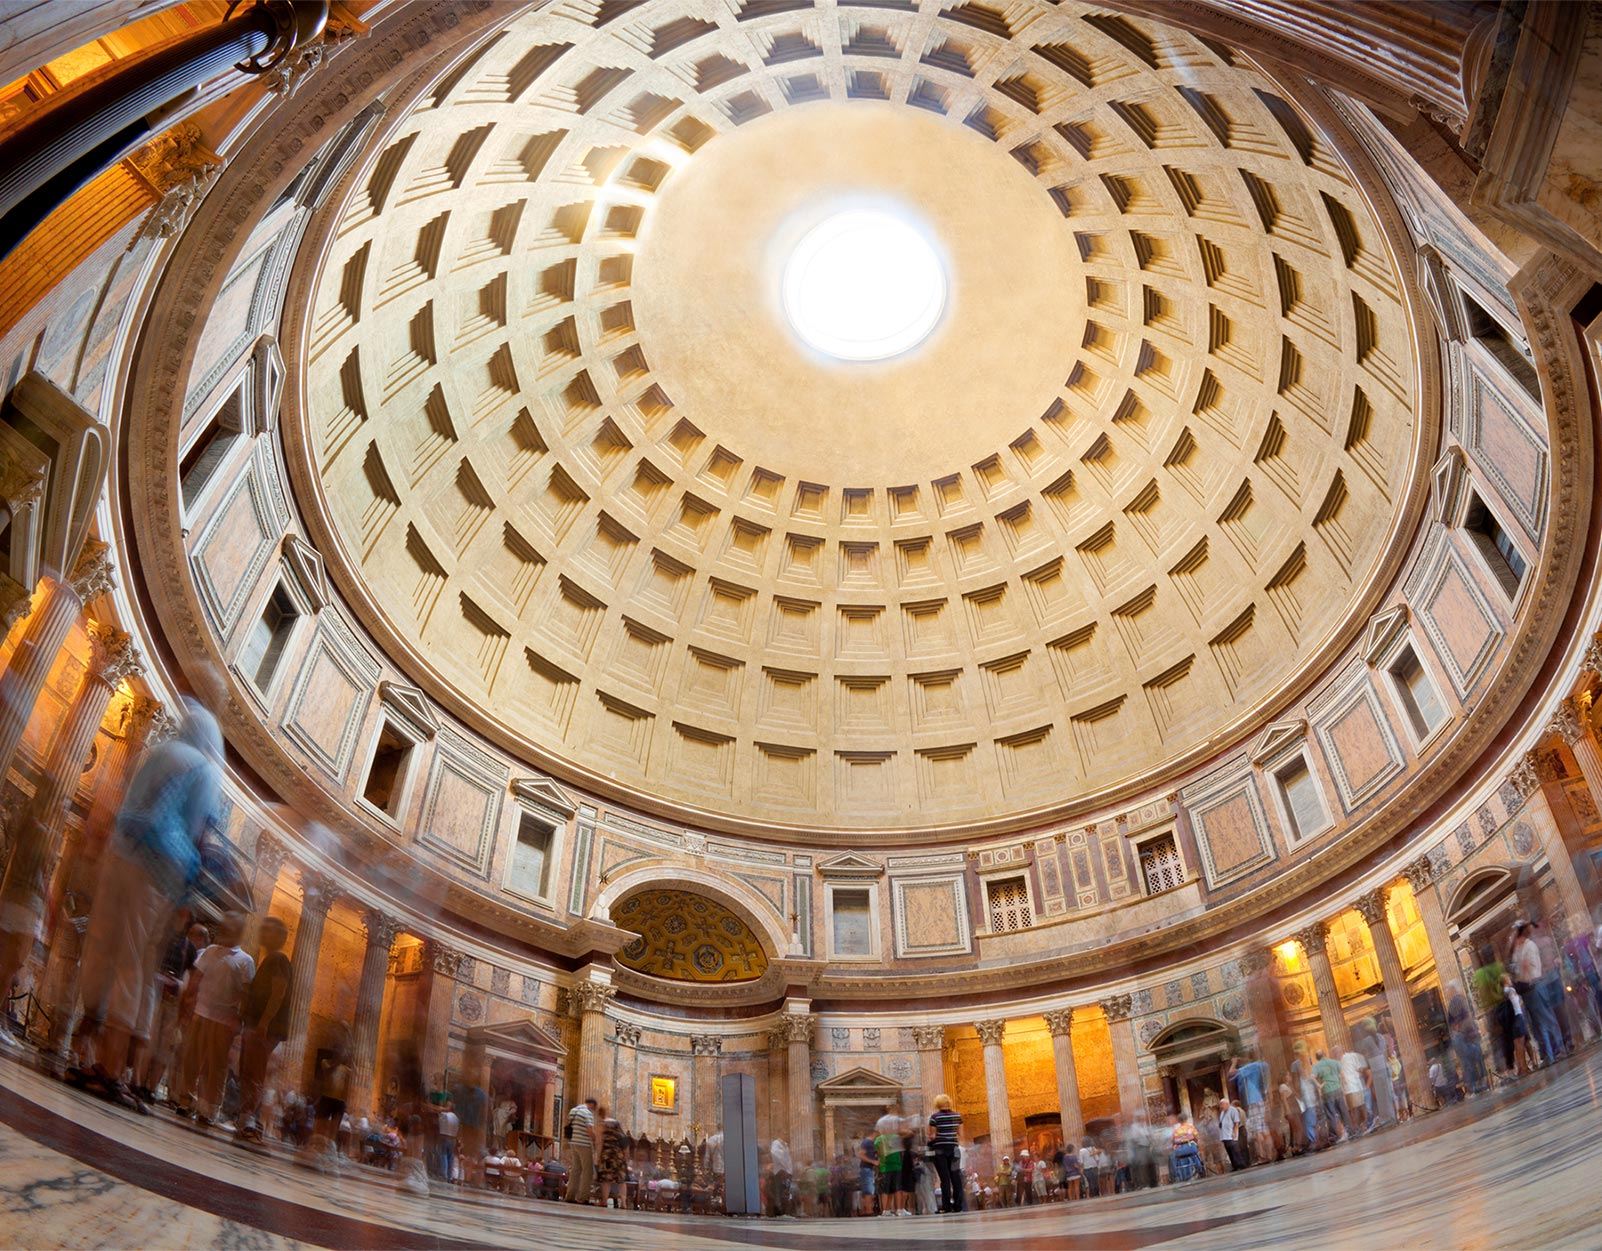 Pantheon in Rome